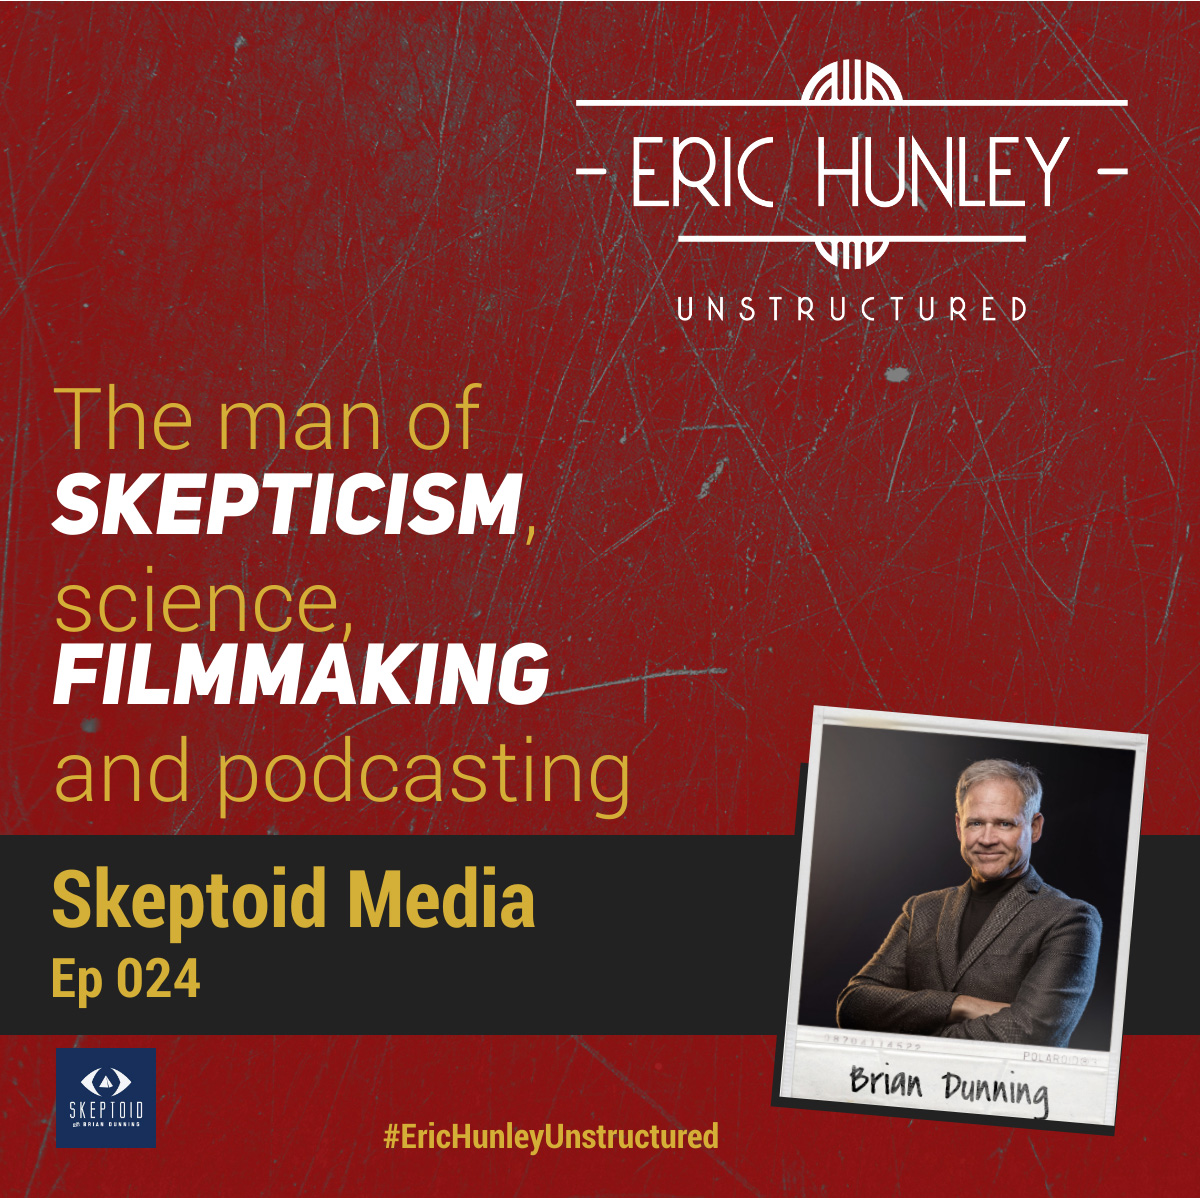 Eric Hunley Unstructured Podcast - 024 Brian Dunning Square Post